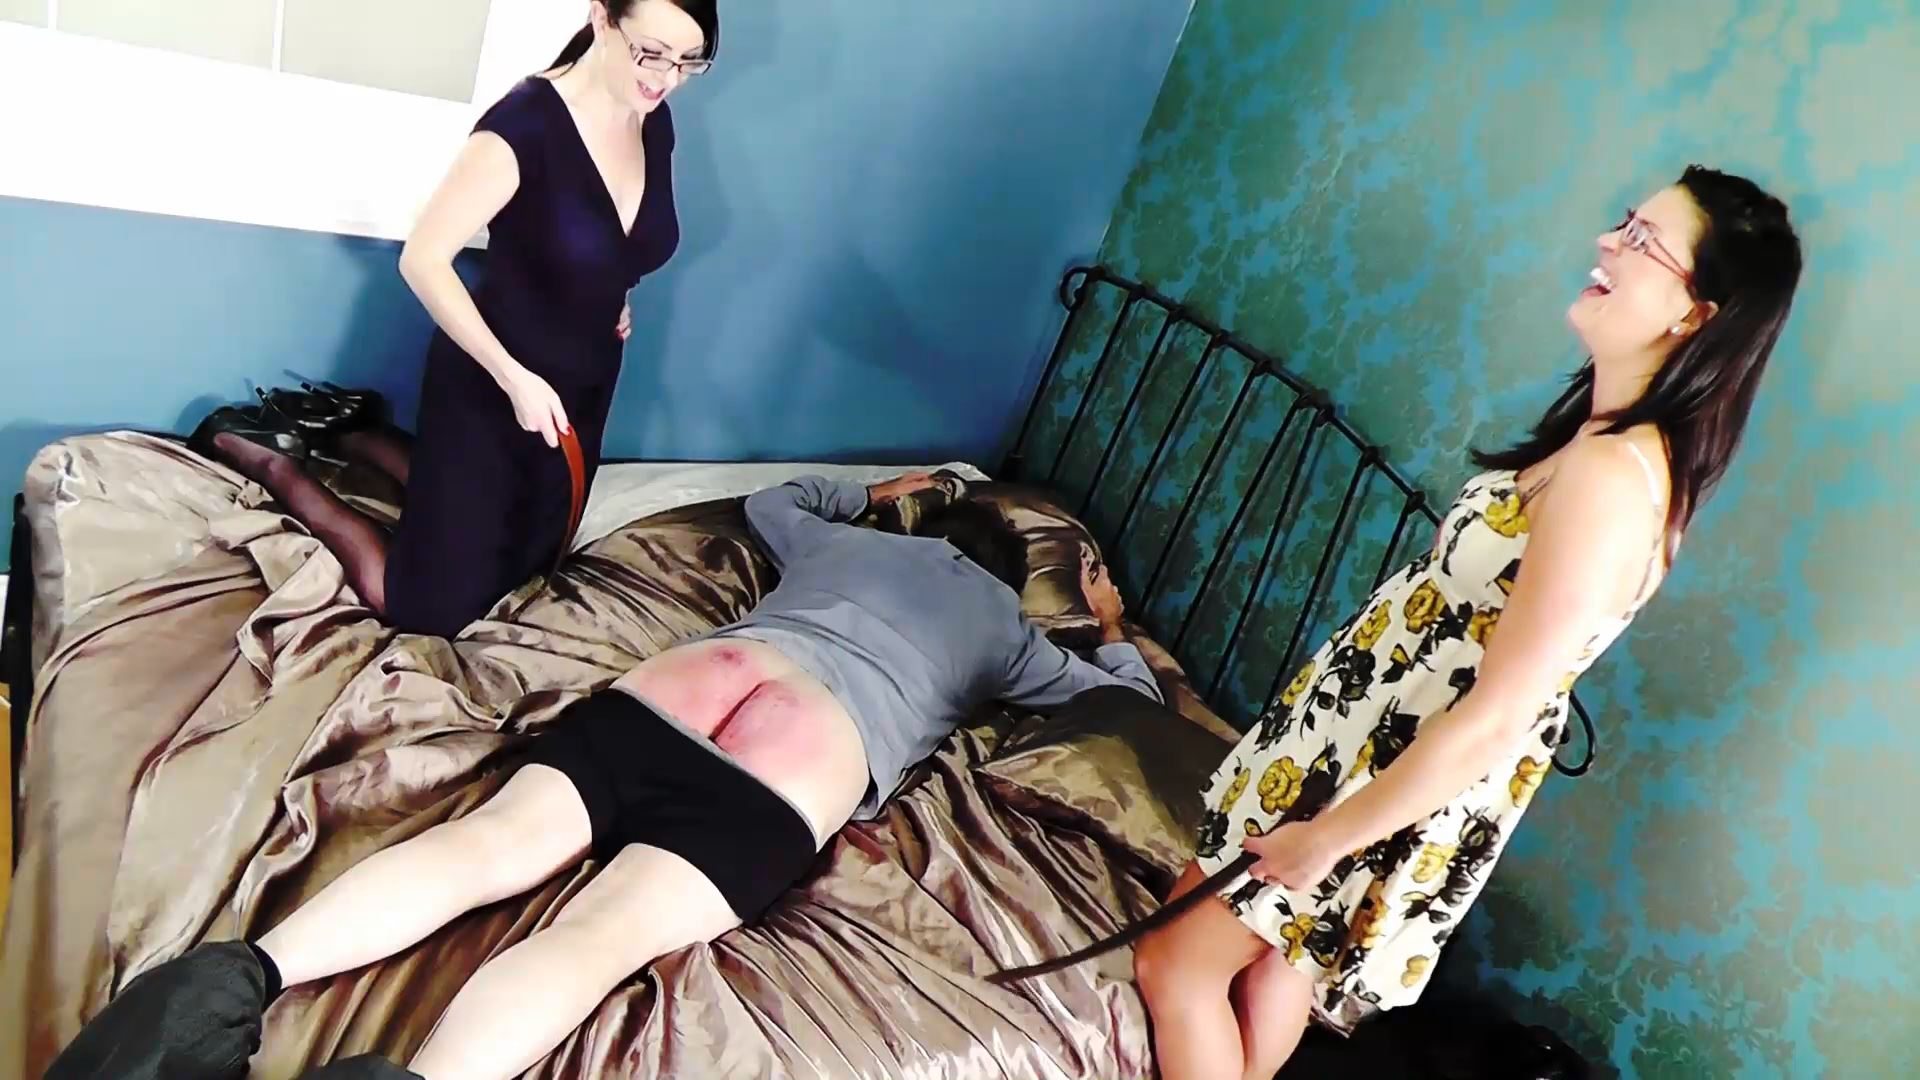 Jessica Wood In Scene: Monthly punishment Part 2 - MISSJESSICAWOODVIDEOS - FULL HD/1080p/MP4